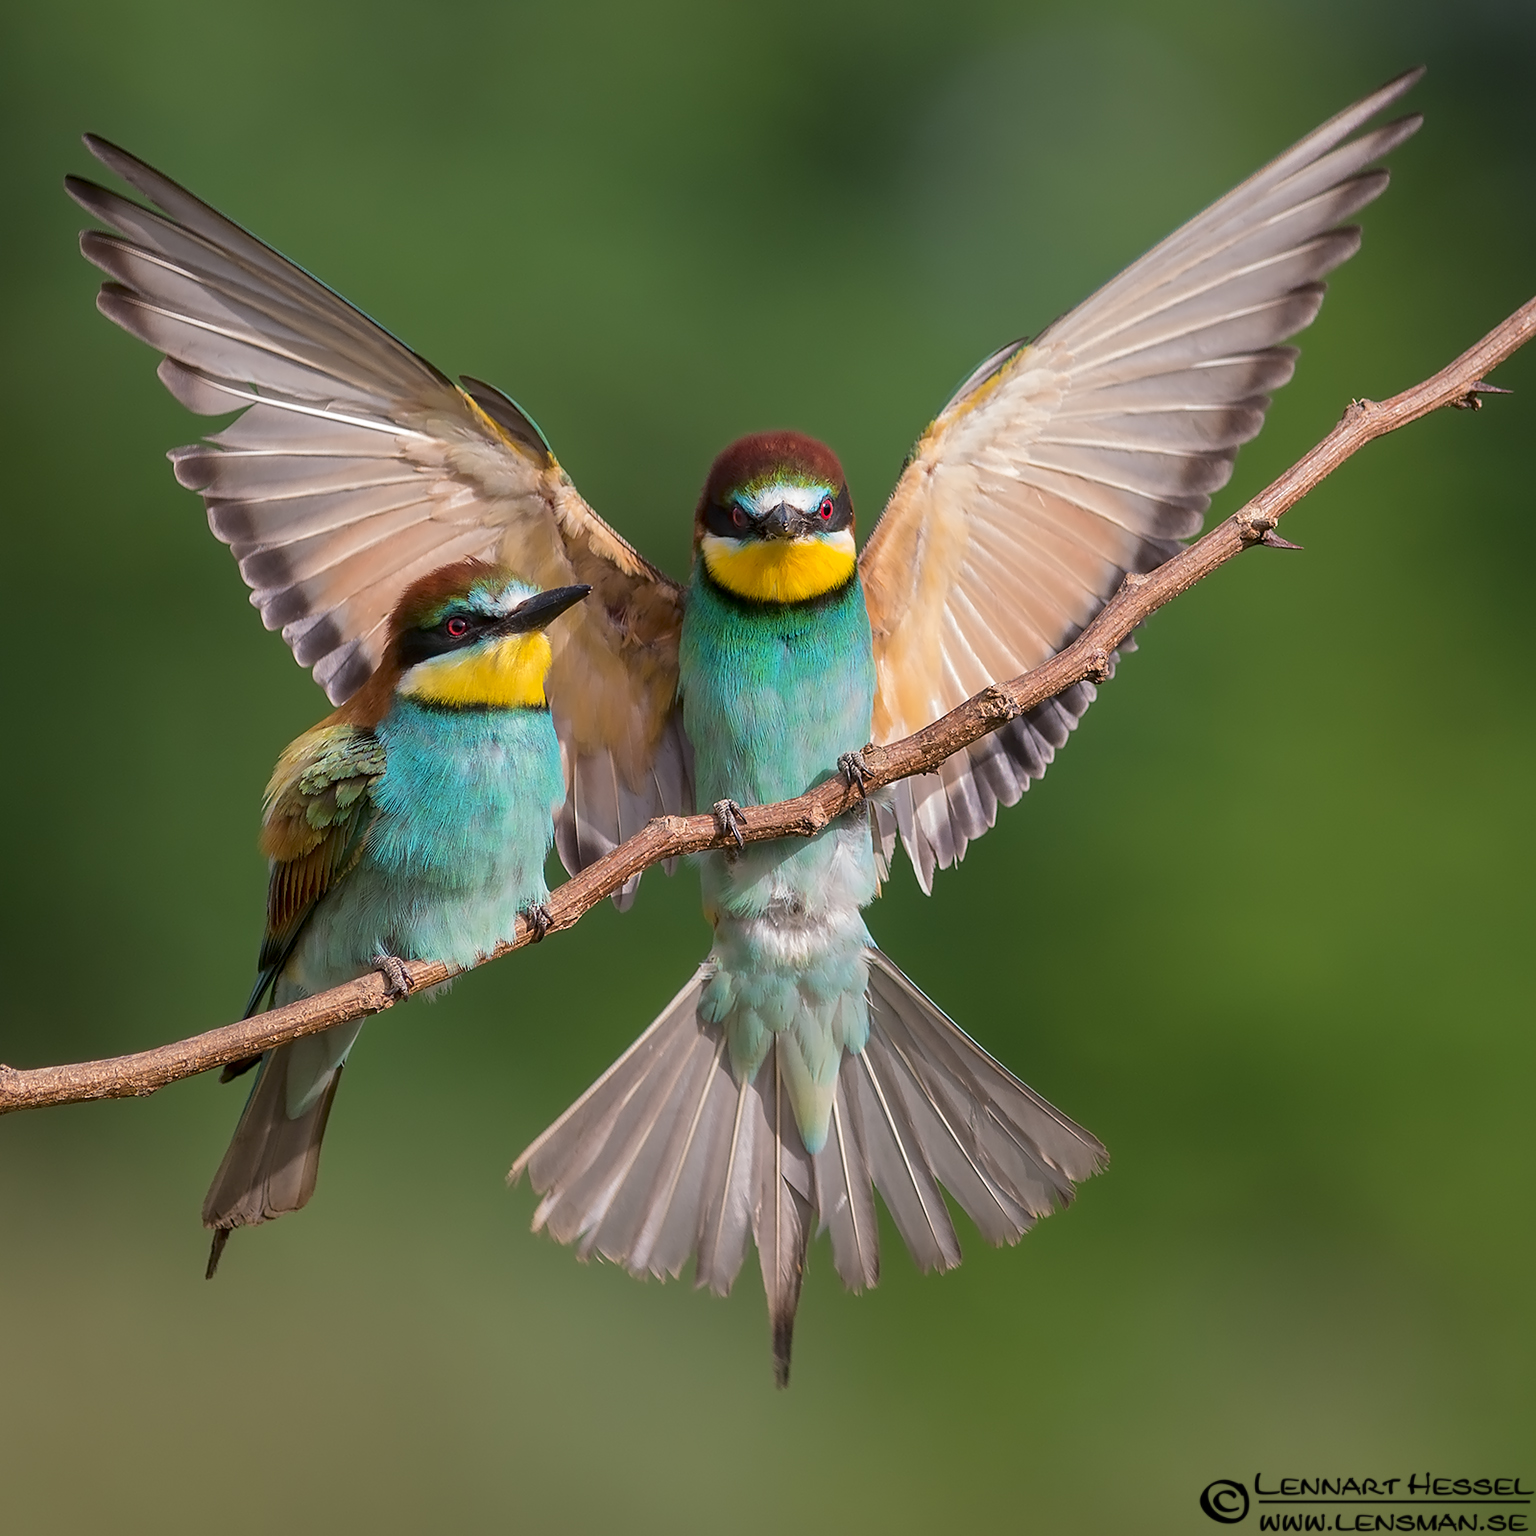 European Bee-eater - The Gaze